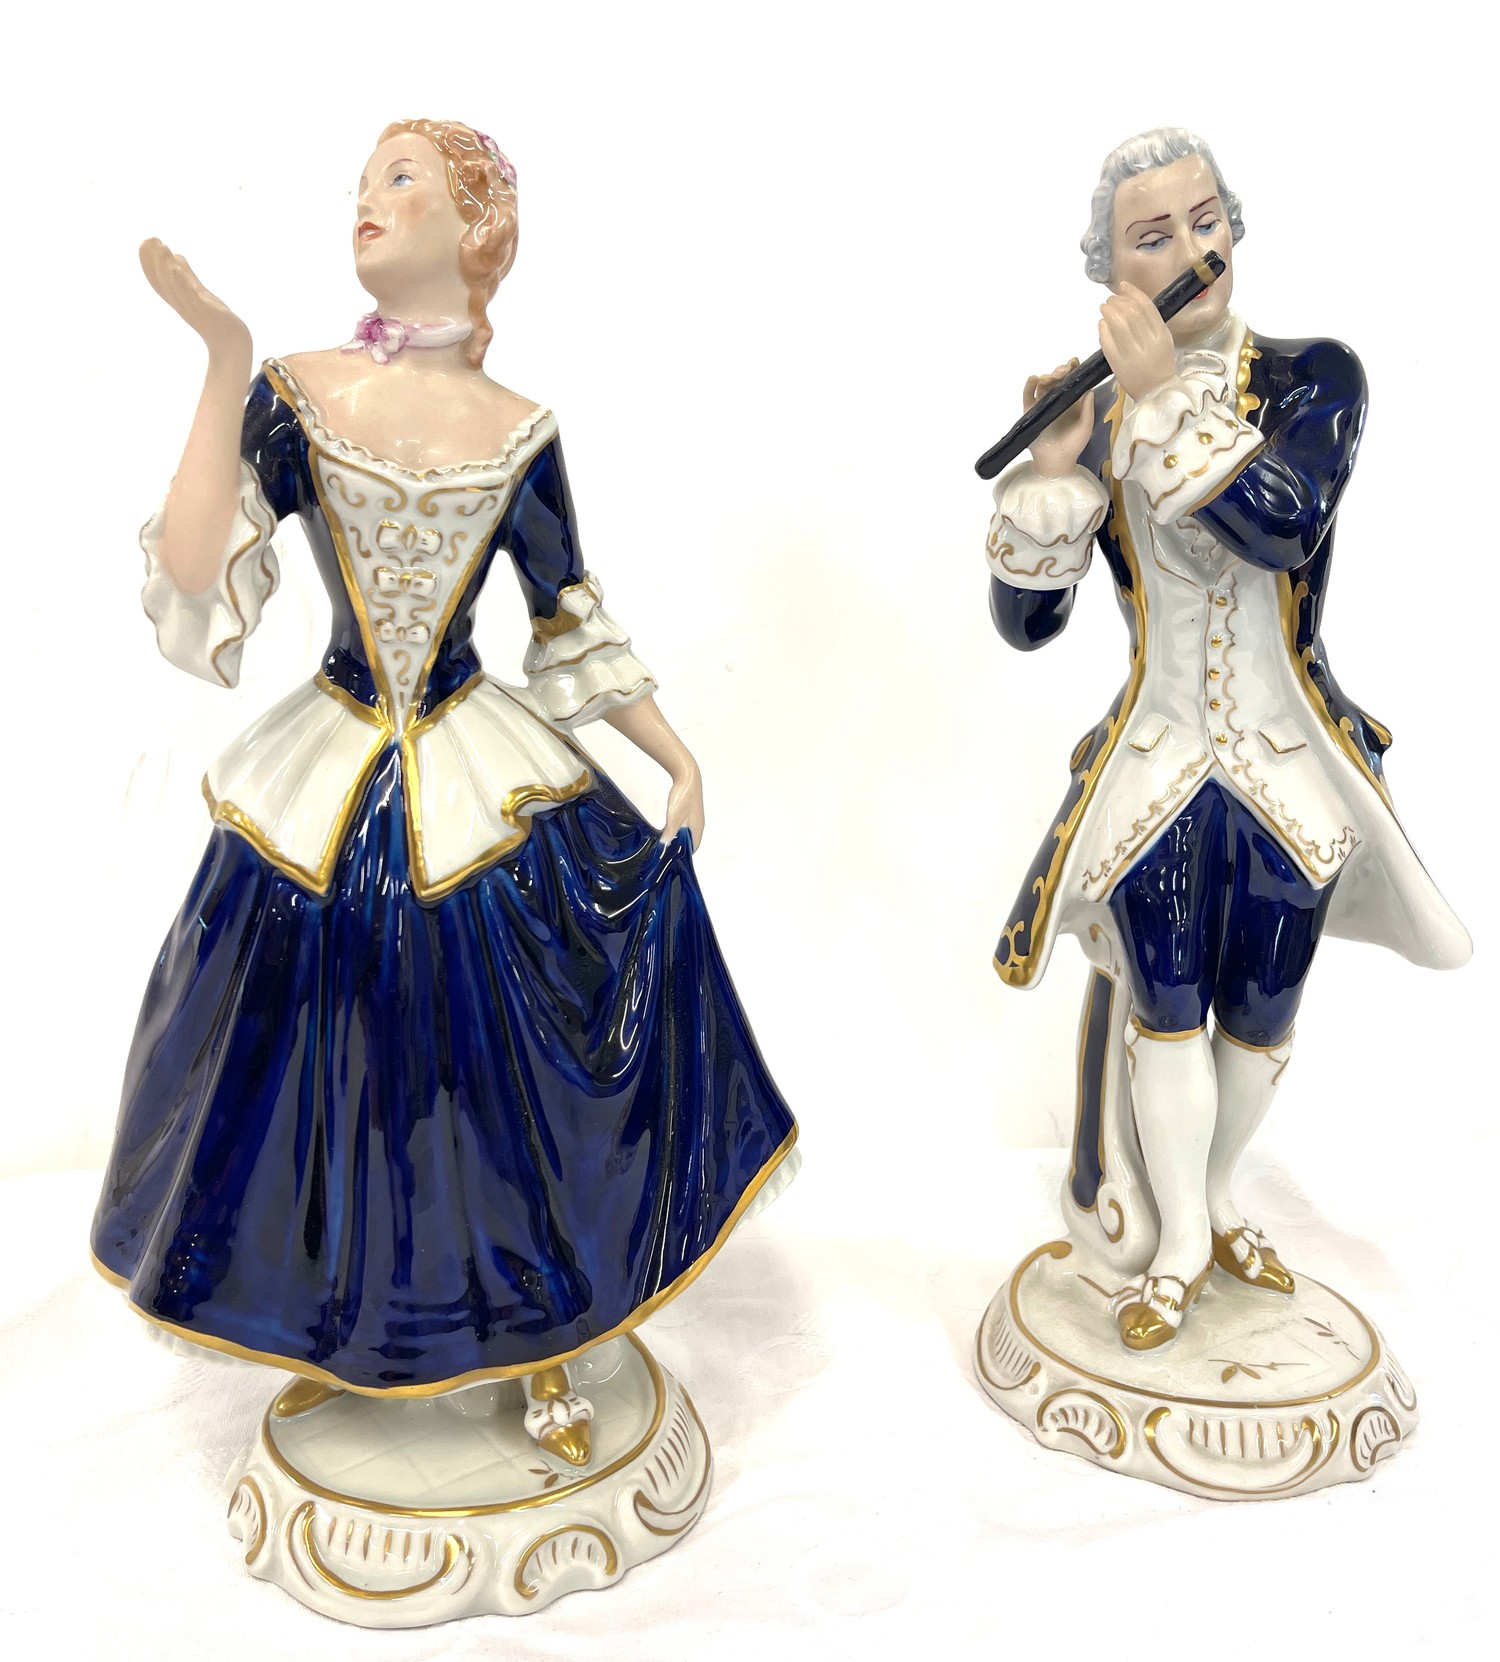 Pair antique Royal Dux figures, good overall condition, approximate height: 13.5 inches